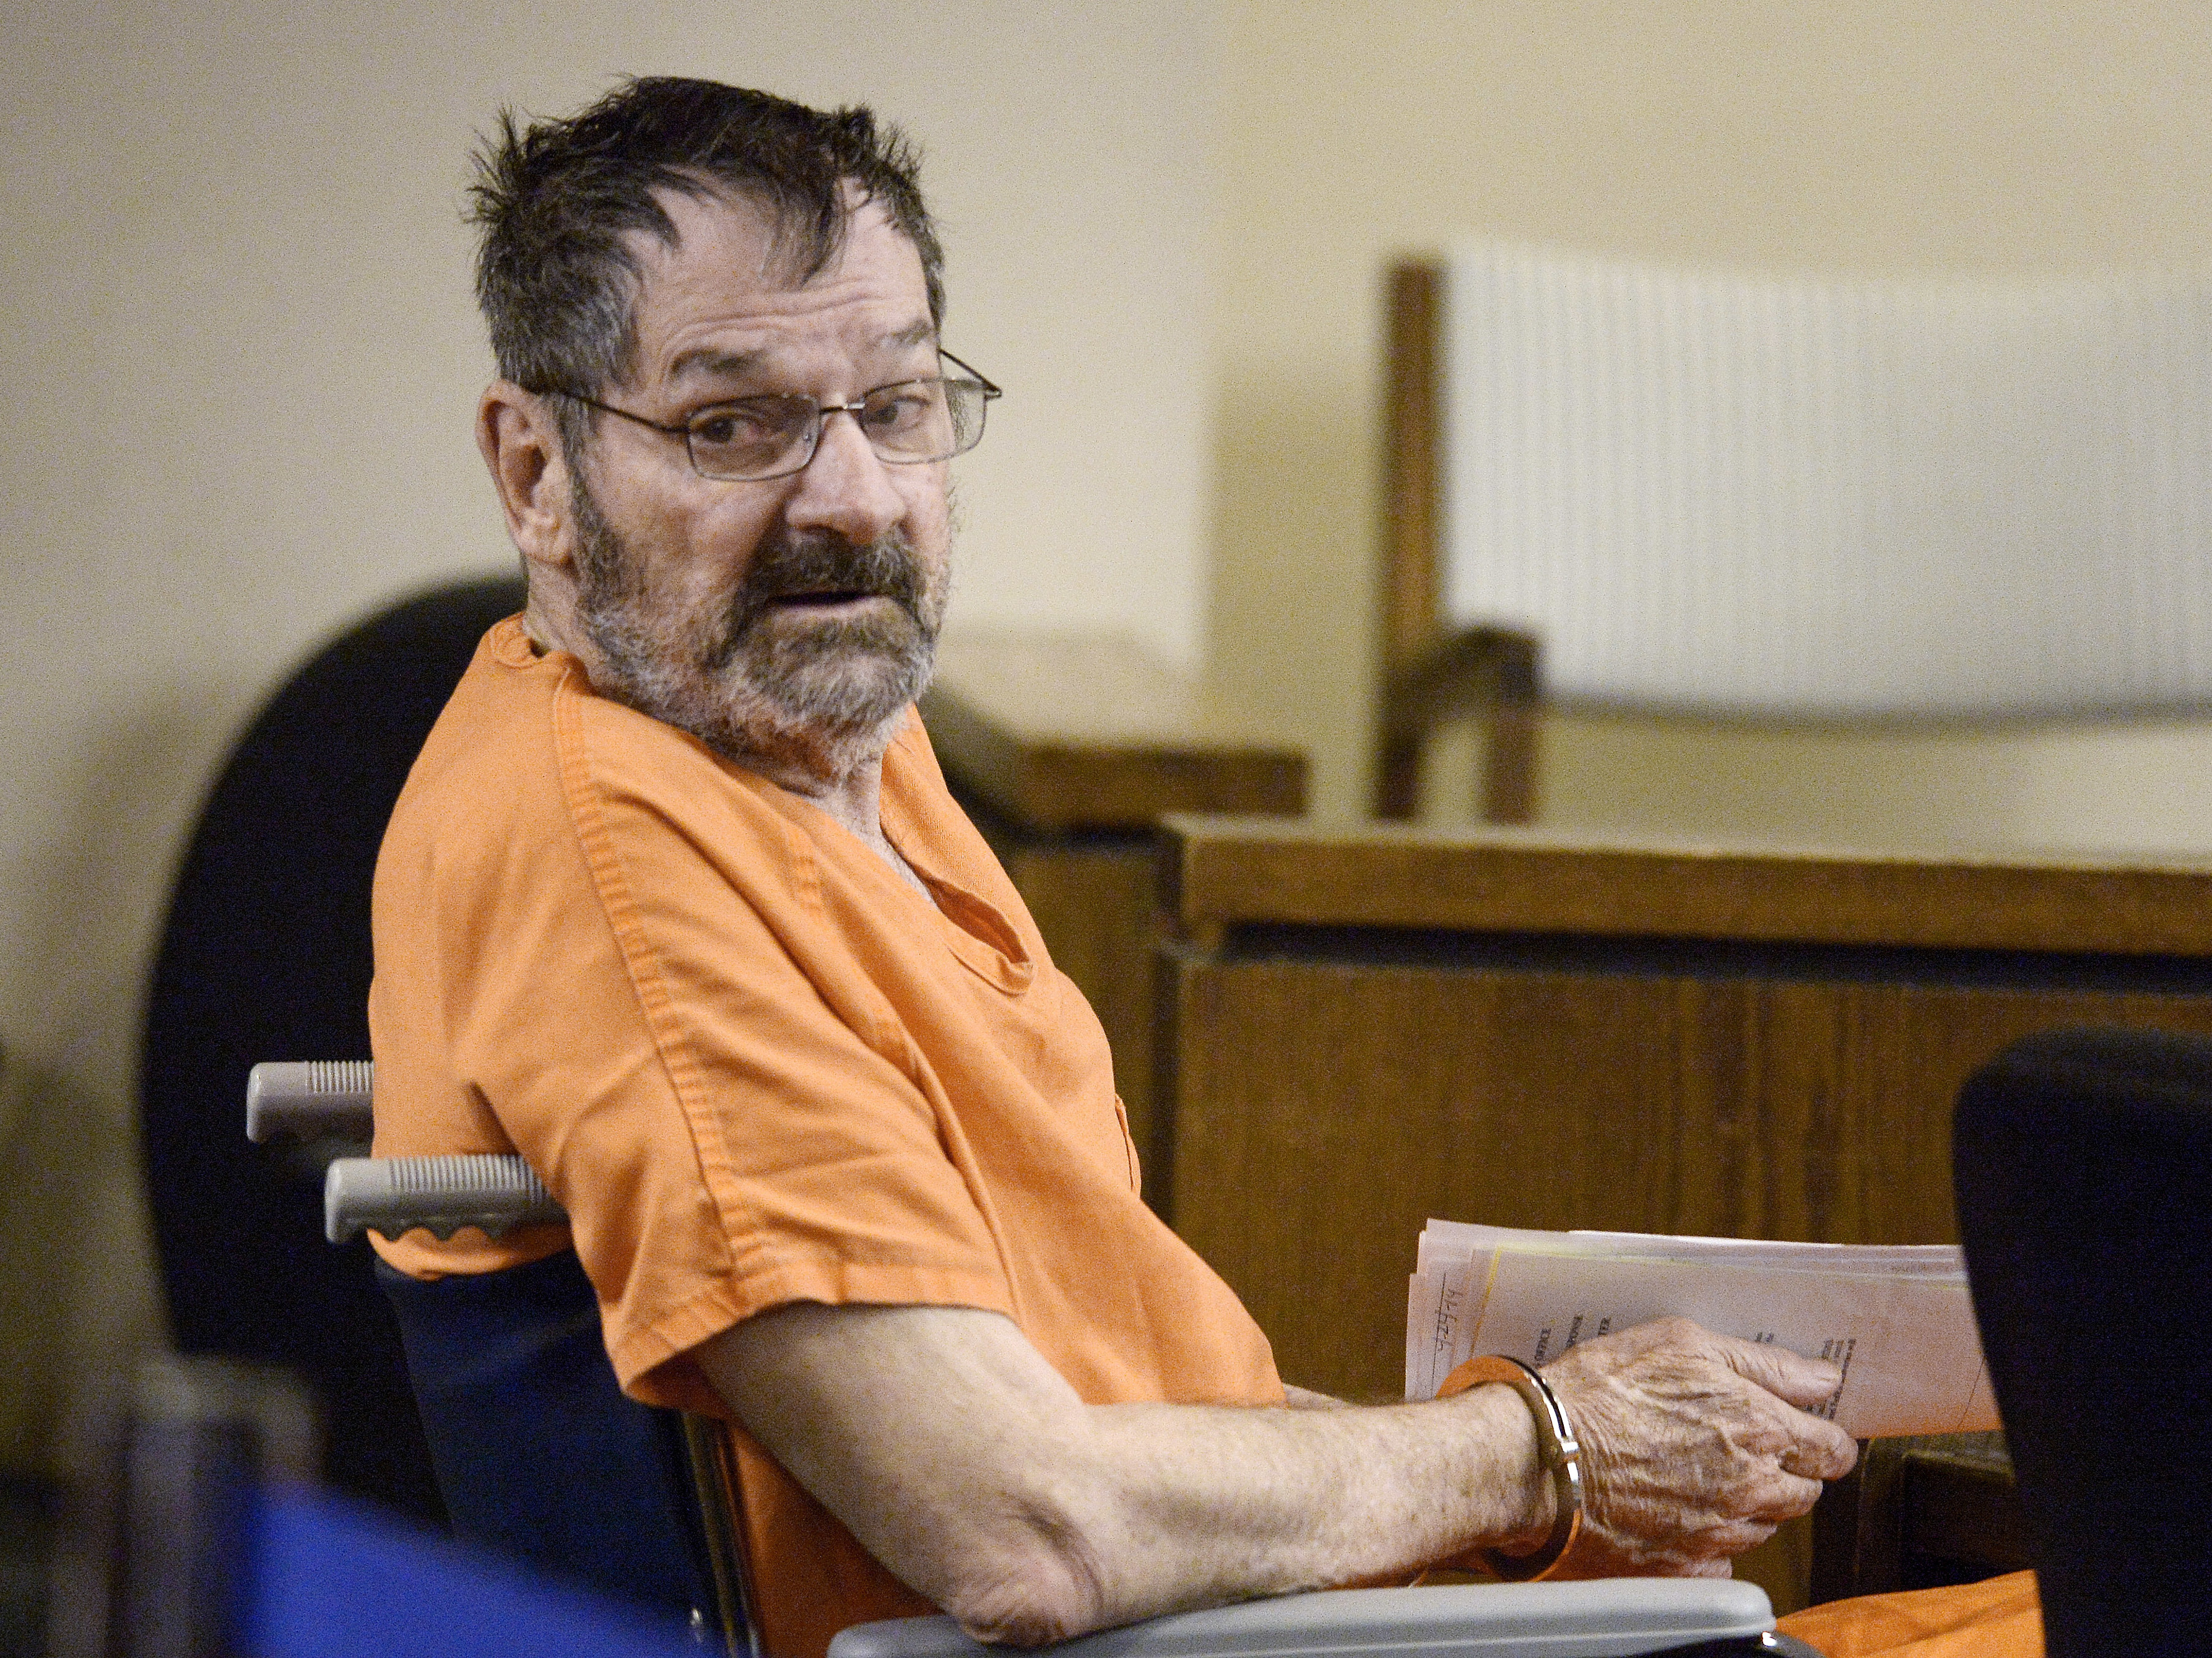 Man Who Shot And Killed 3 At Kansas Jewish Centers Dies In Prison